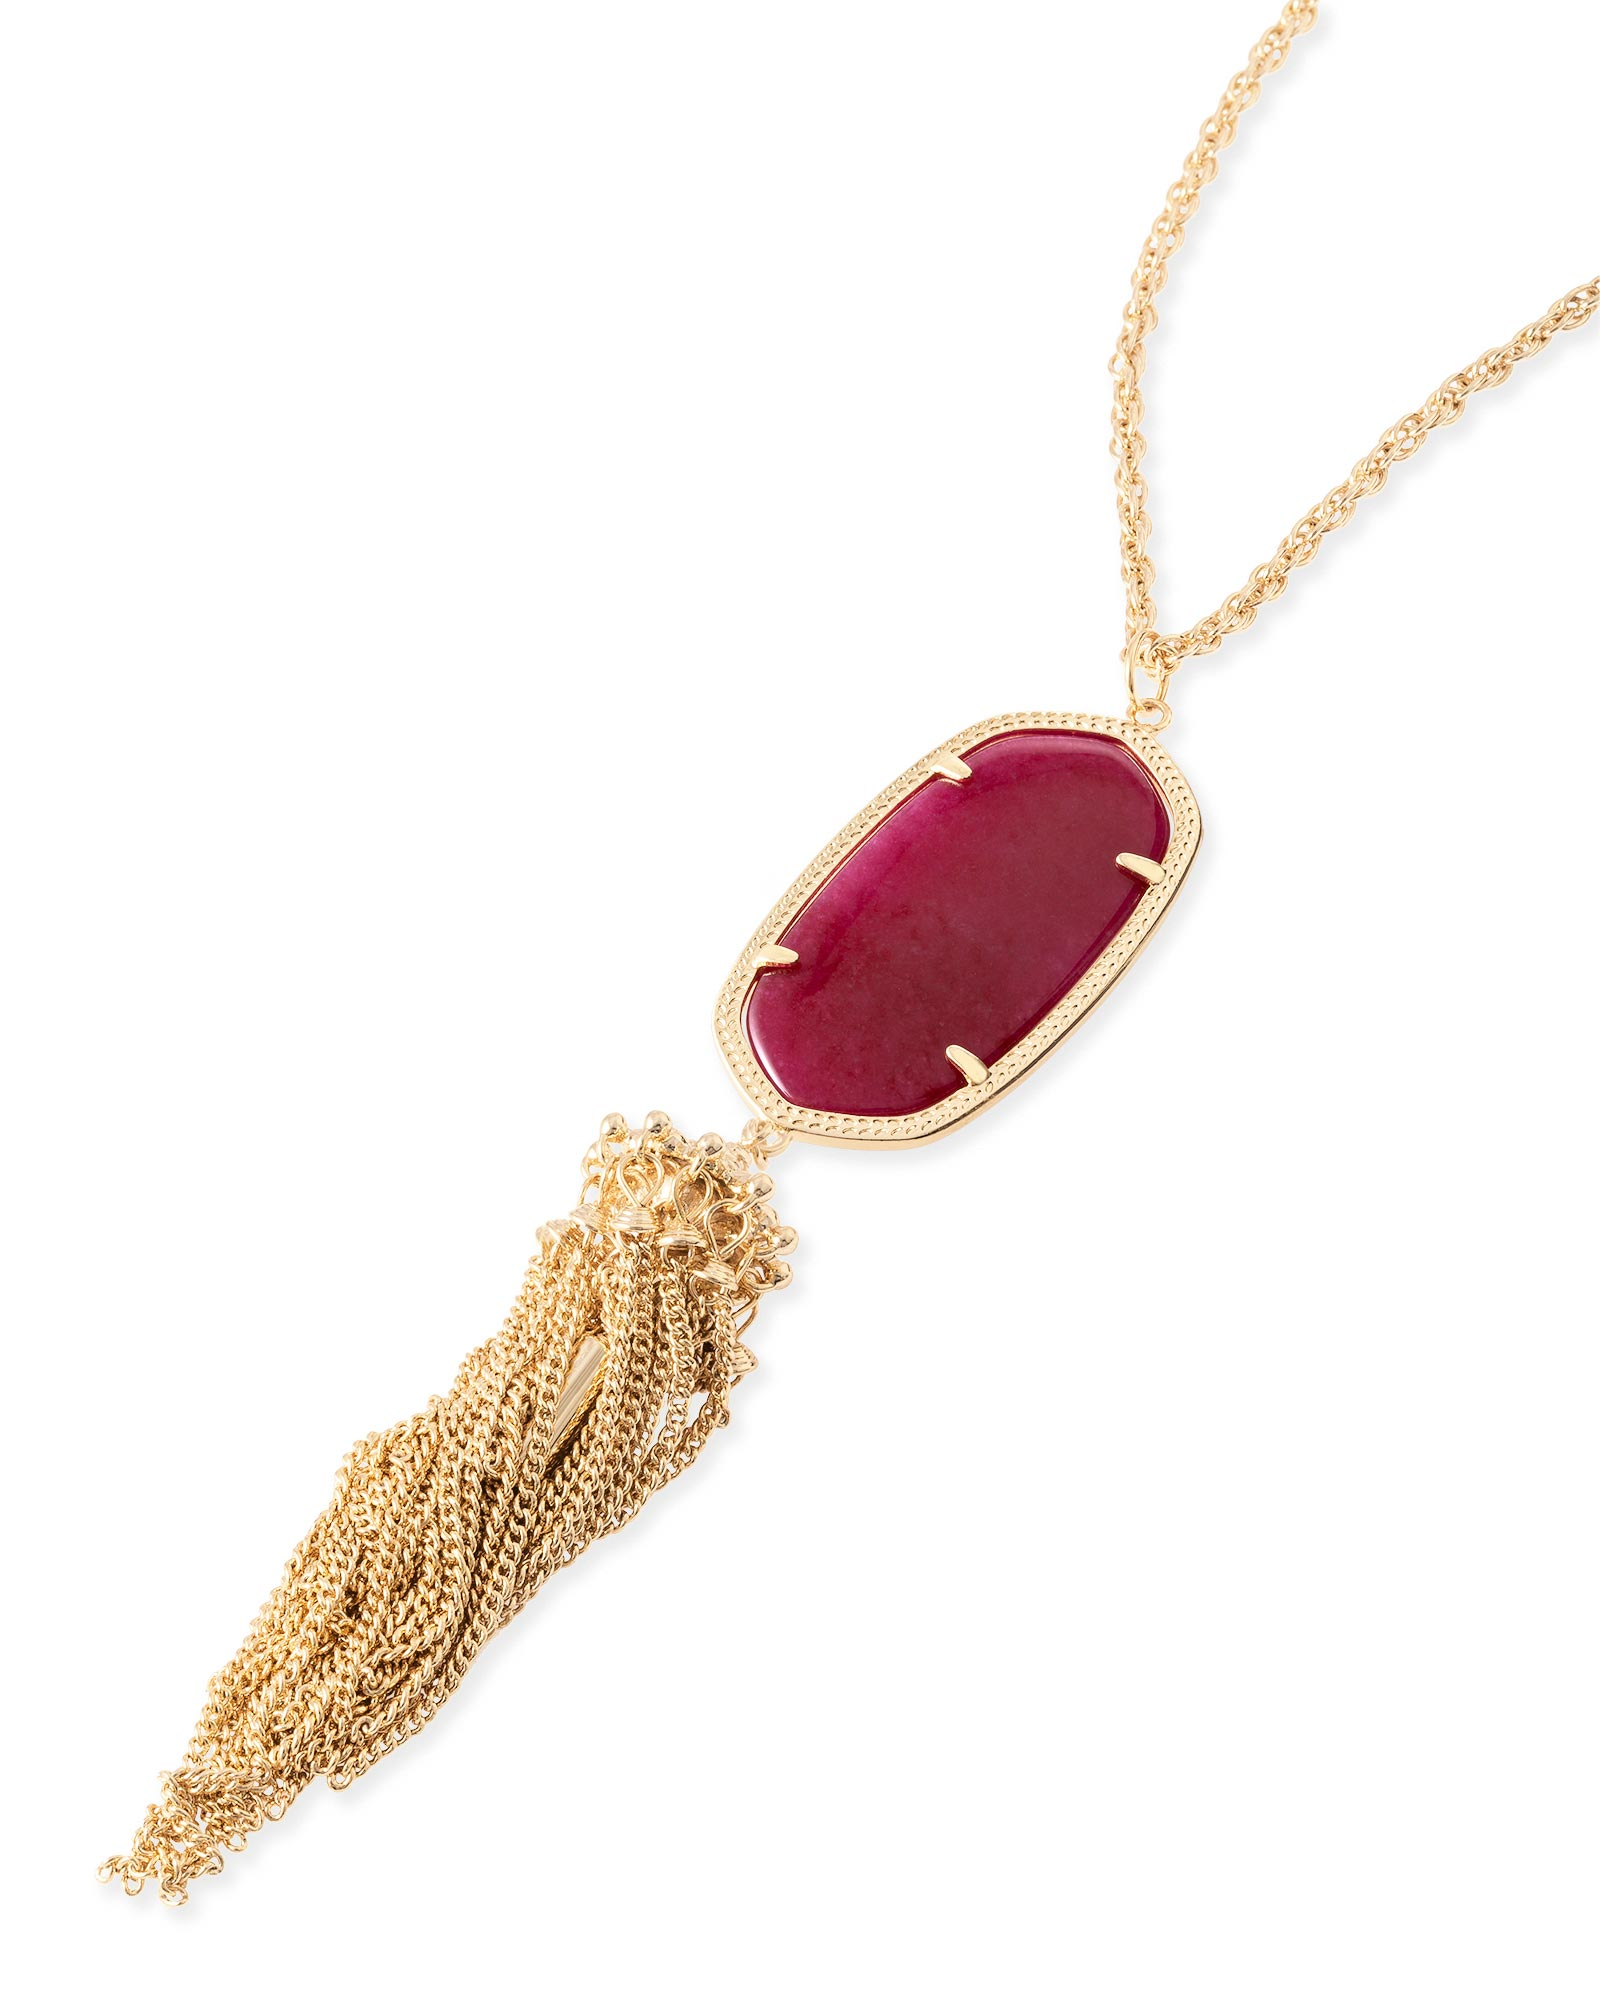 Rayne Necklace in Maroon Jade